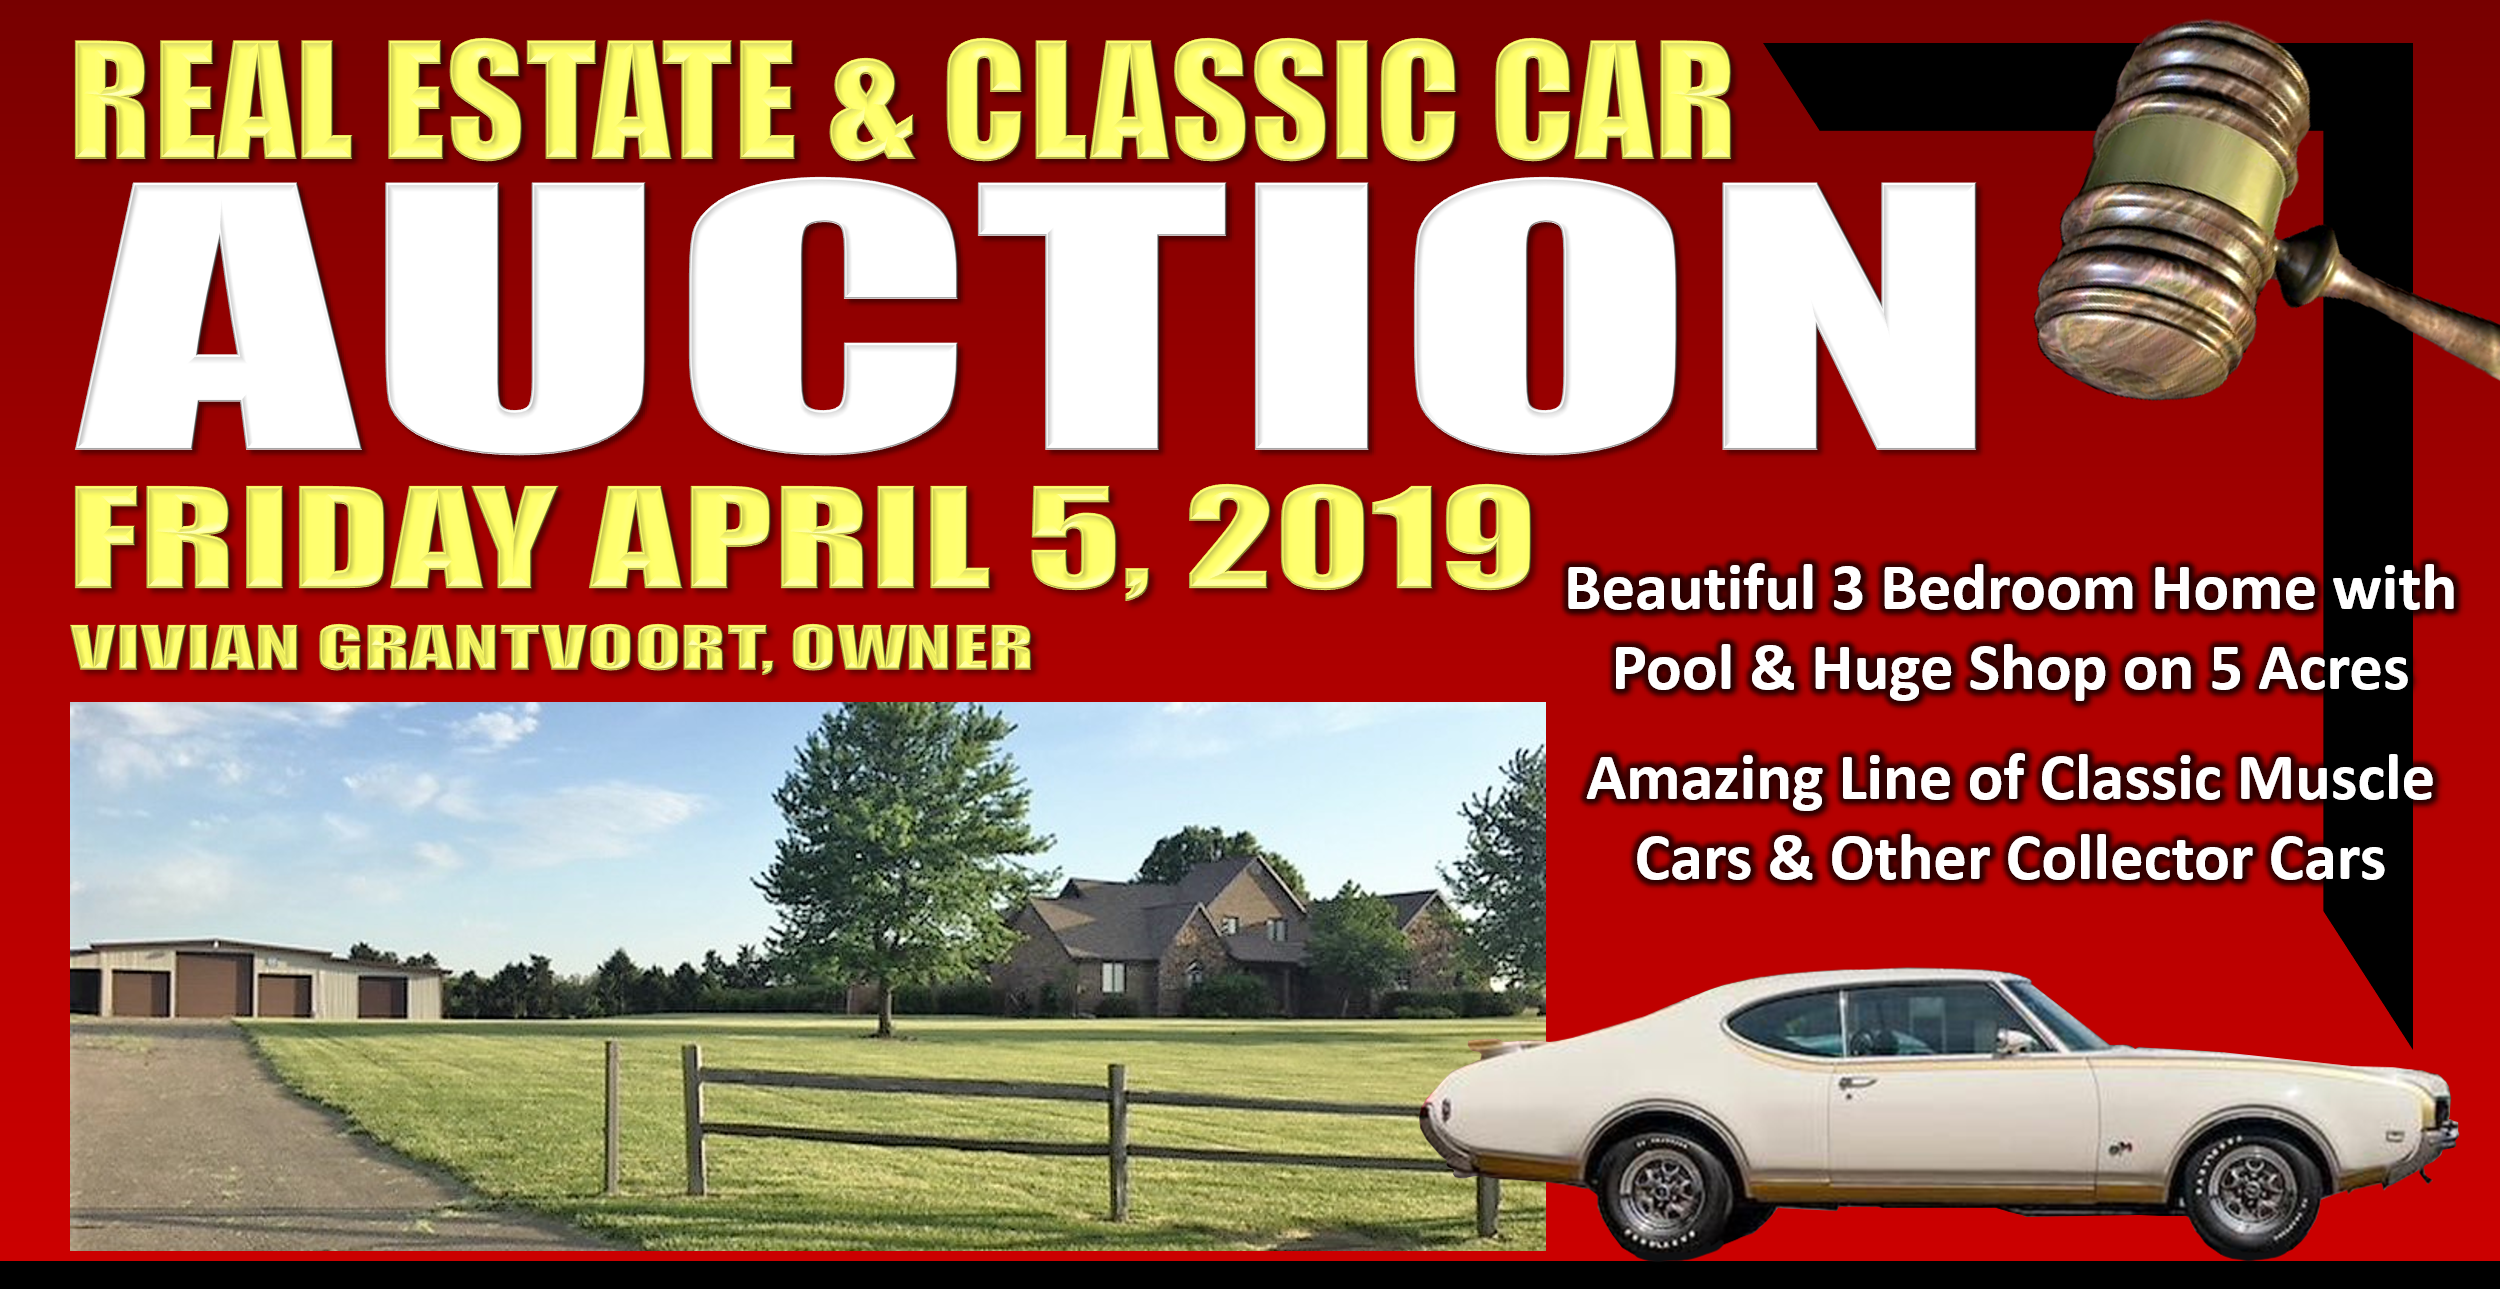 REAL ESTATE & CLASSIC CAR AUCTION